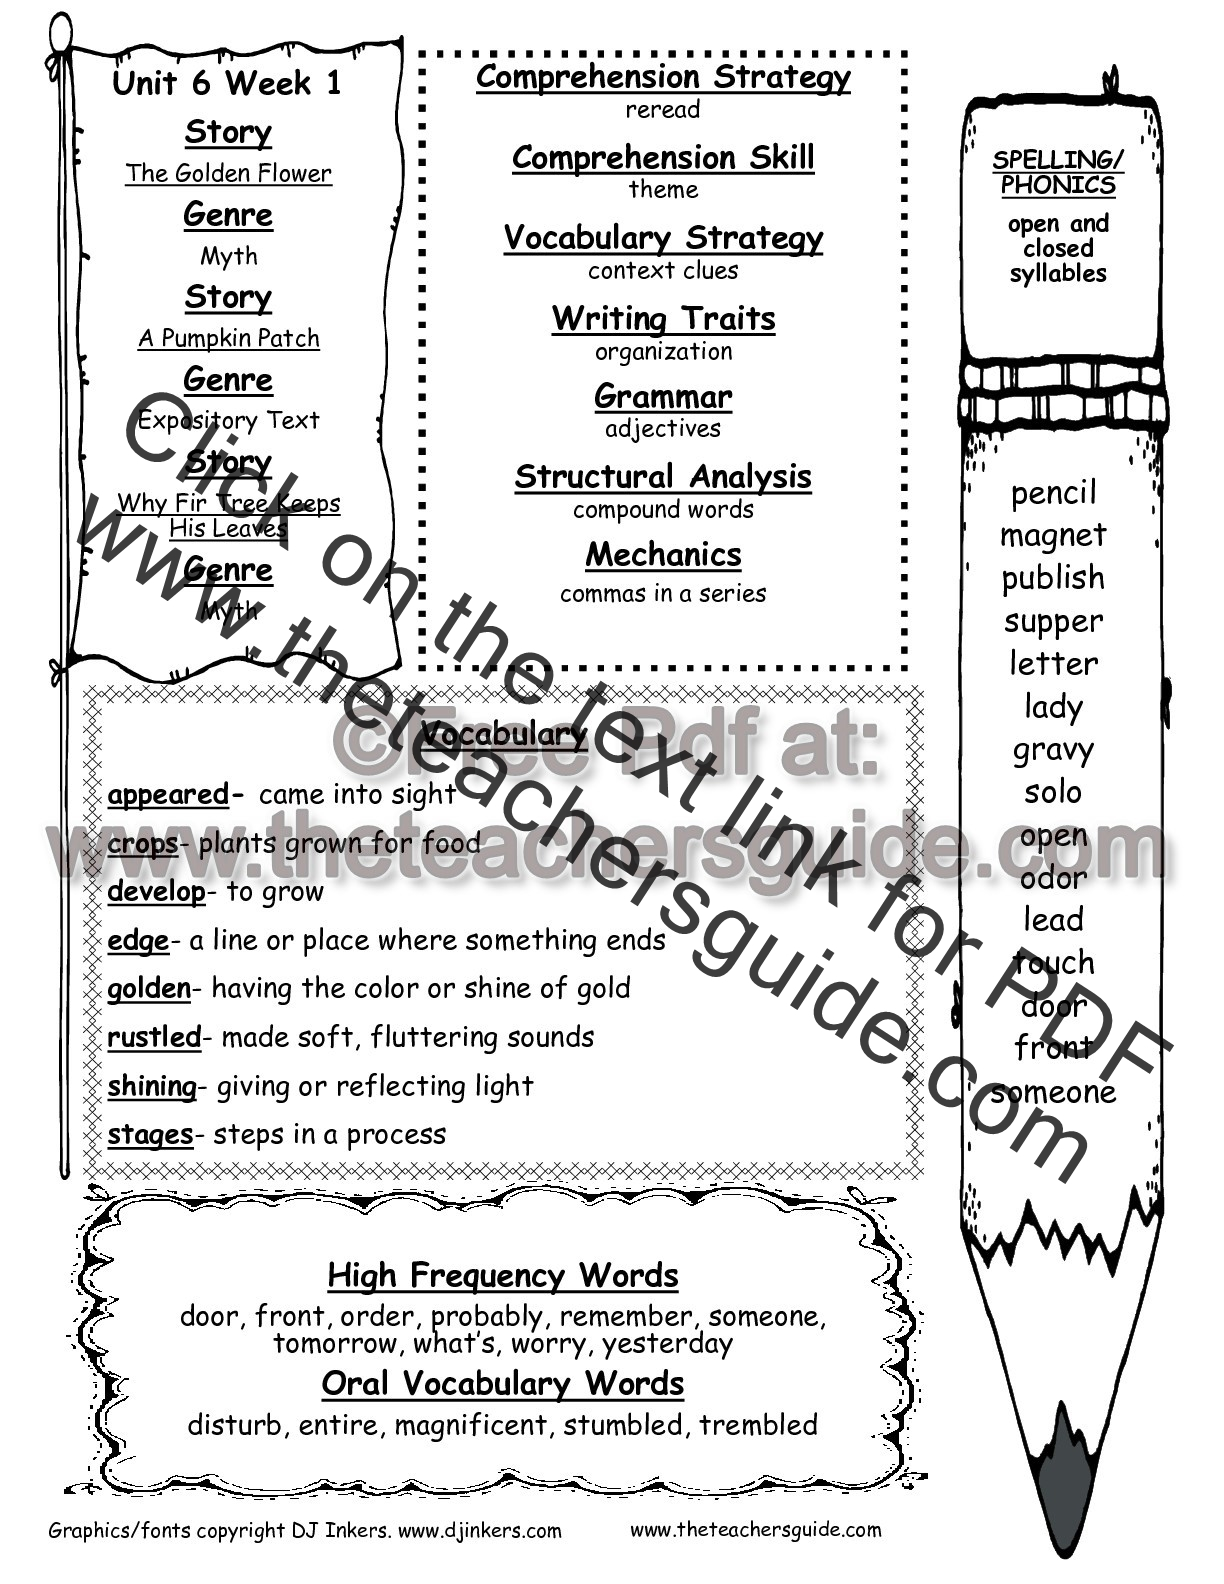 Mcgraw hill wonders second grade resources and printouts second grade wonders unit six week one printouts weekly outline ibookread Download